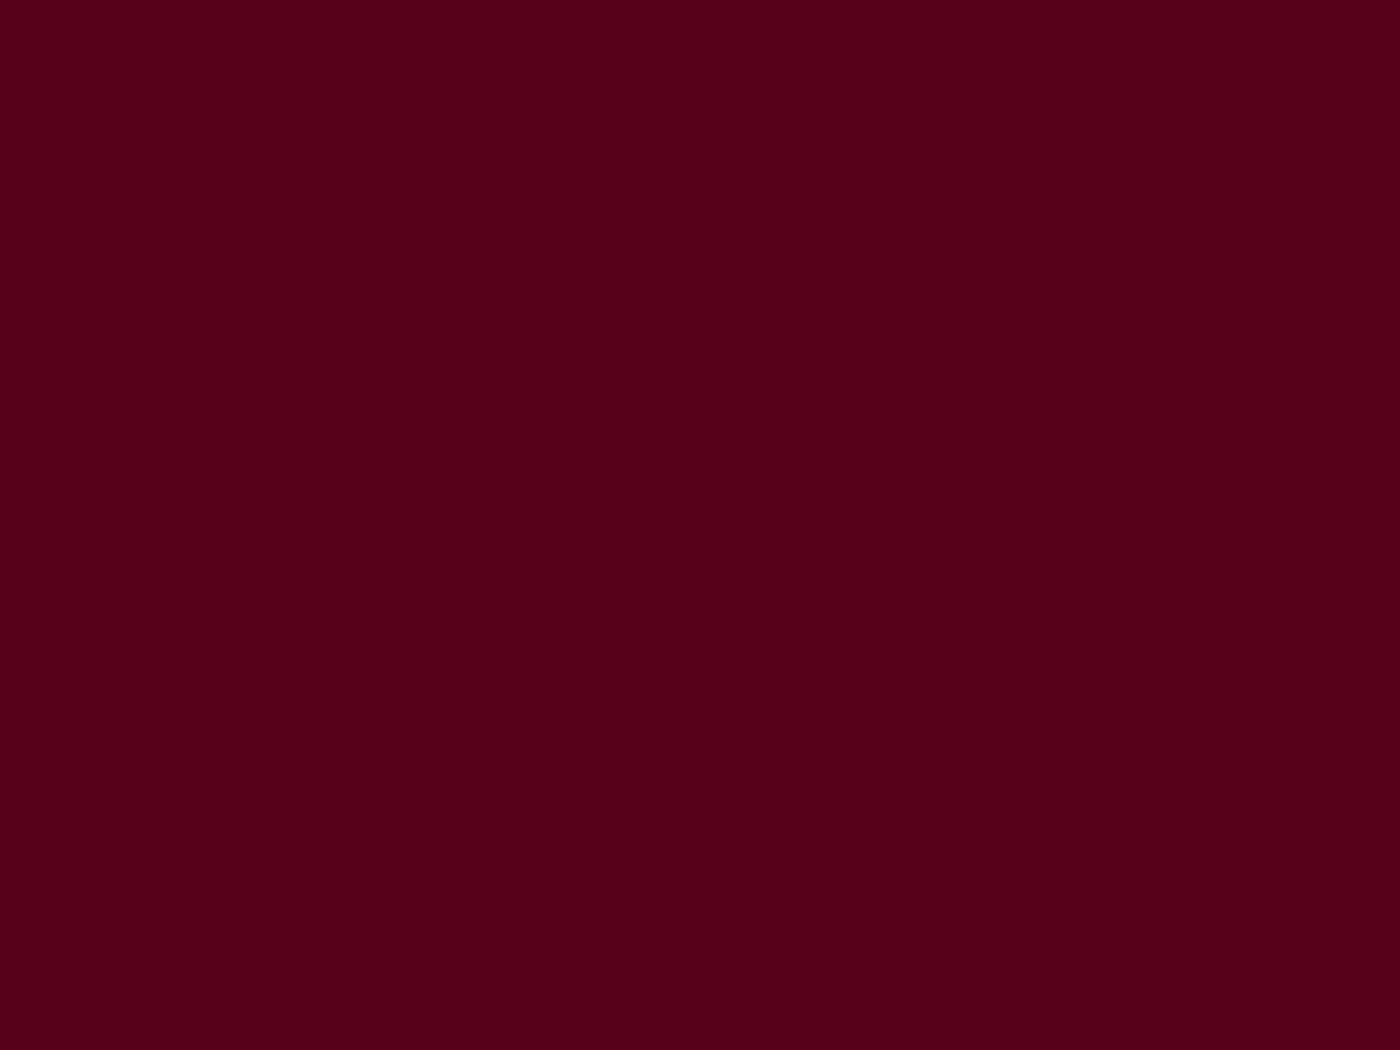 1400x1050 Dark Scarlet Solid Color Background